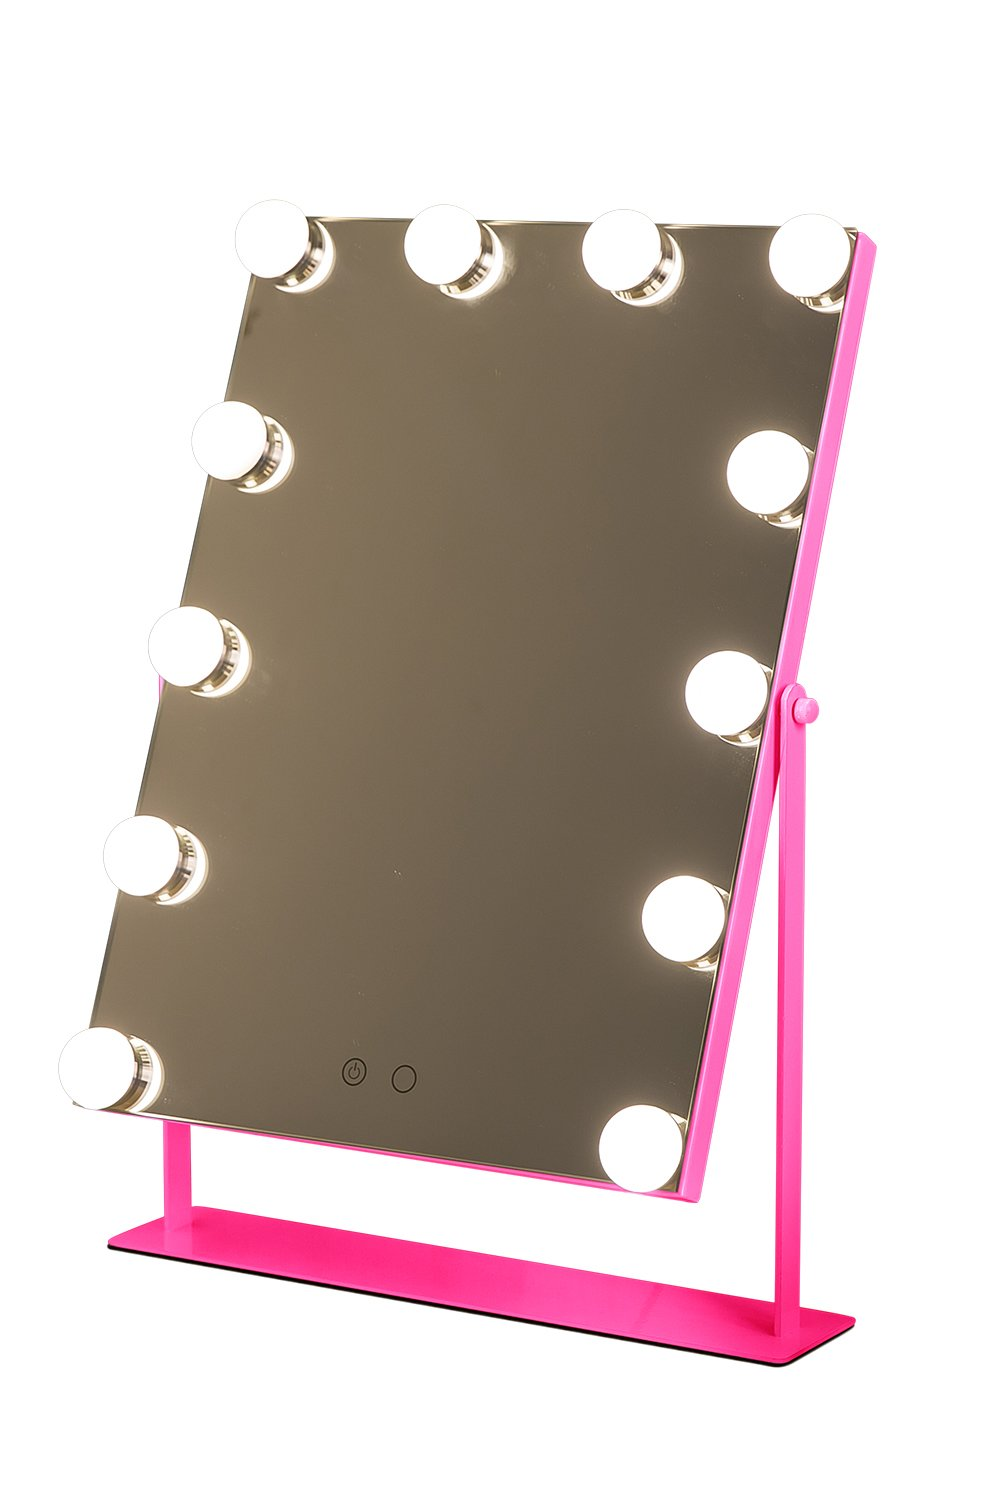 Geek-House Frameless Hollywood Tabletops Lighted Makeup Vanity Mirror (12 LED Bulb) Large with Dimmer Angle-Adjustable Pink